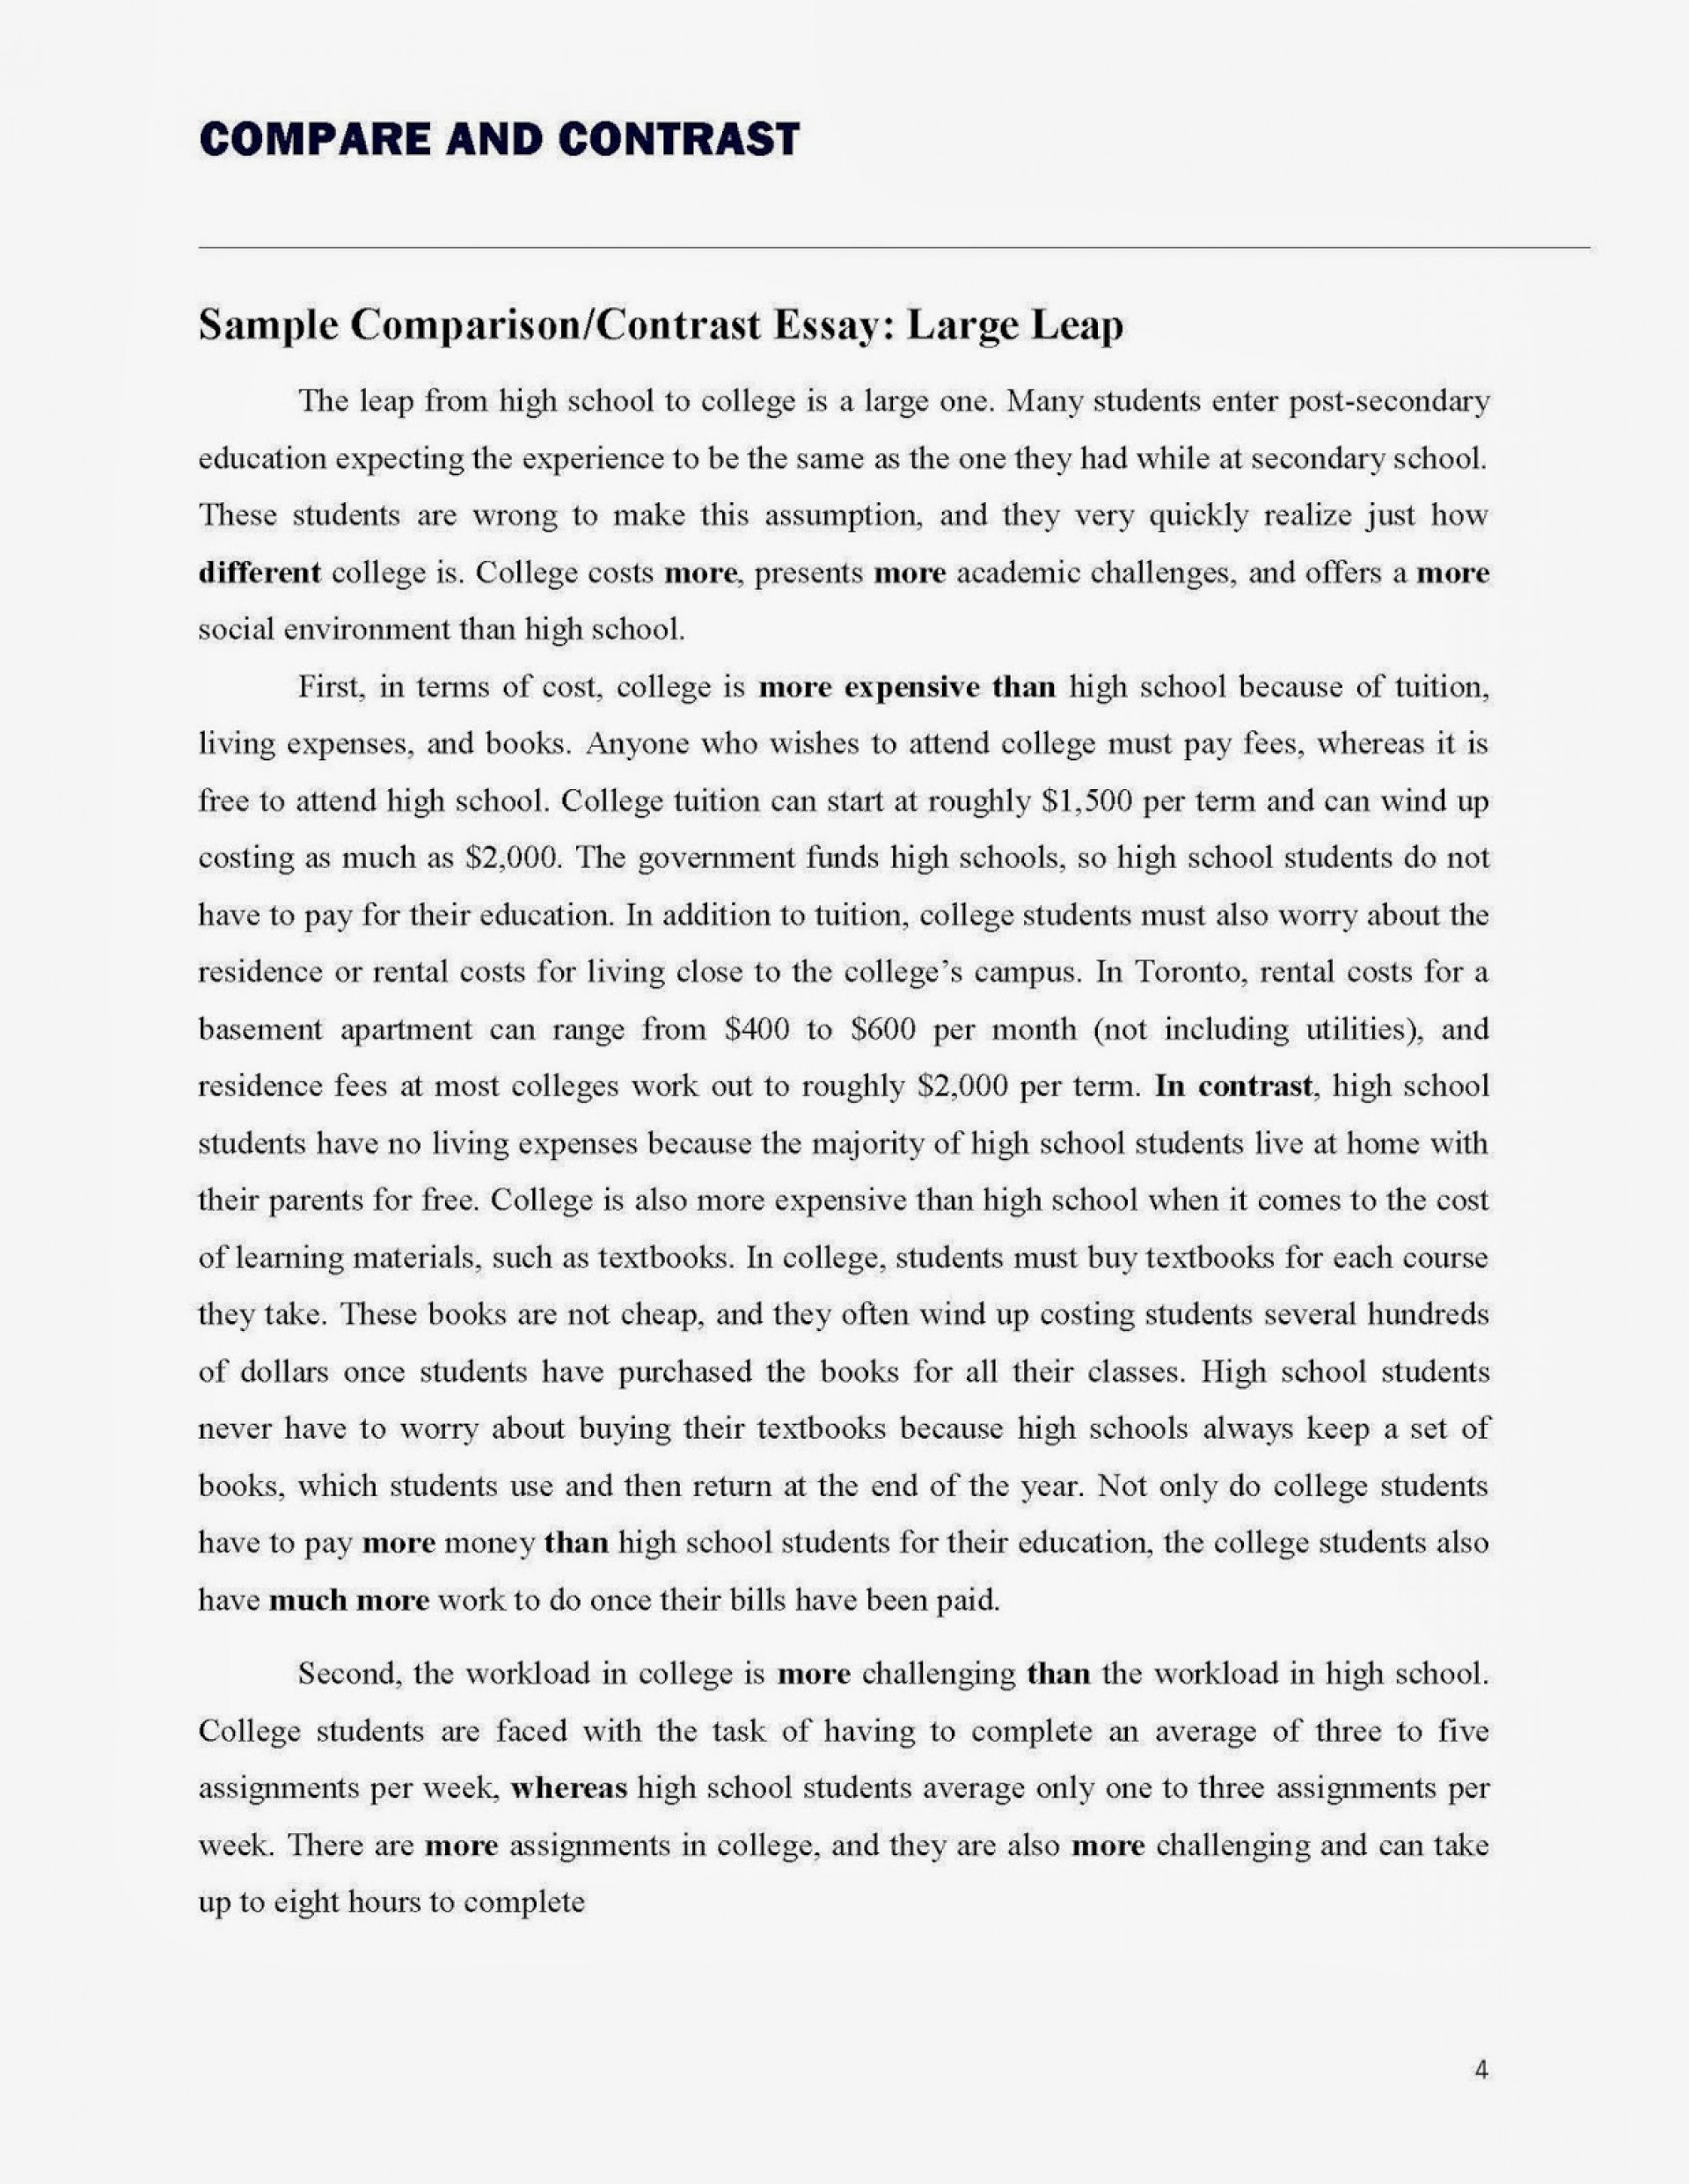 013 Compare Contrast Essay Topics Compare20and20contrast20essay Page 4 Stupendous For College Middle School Elementary Students 1920